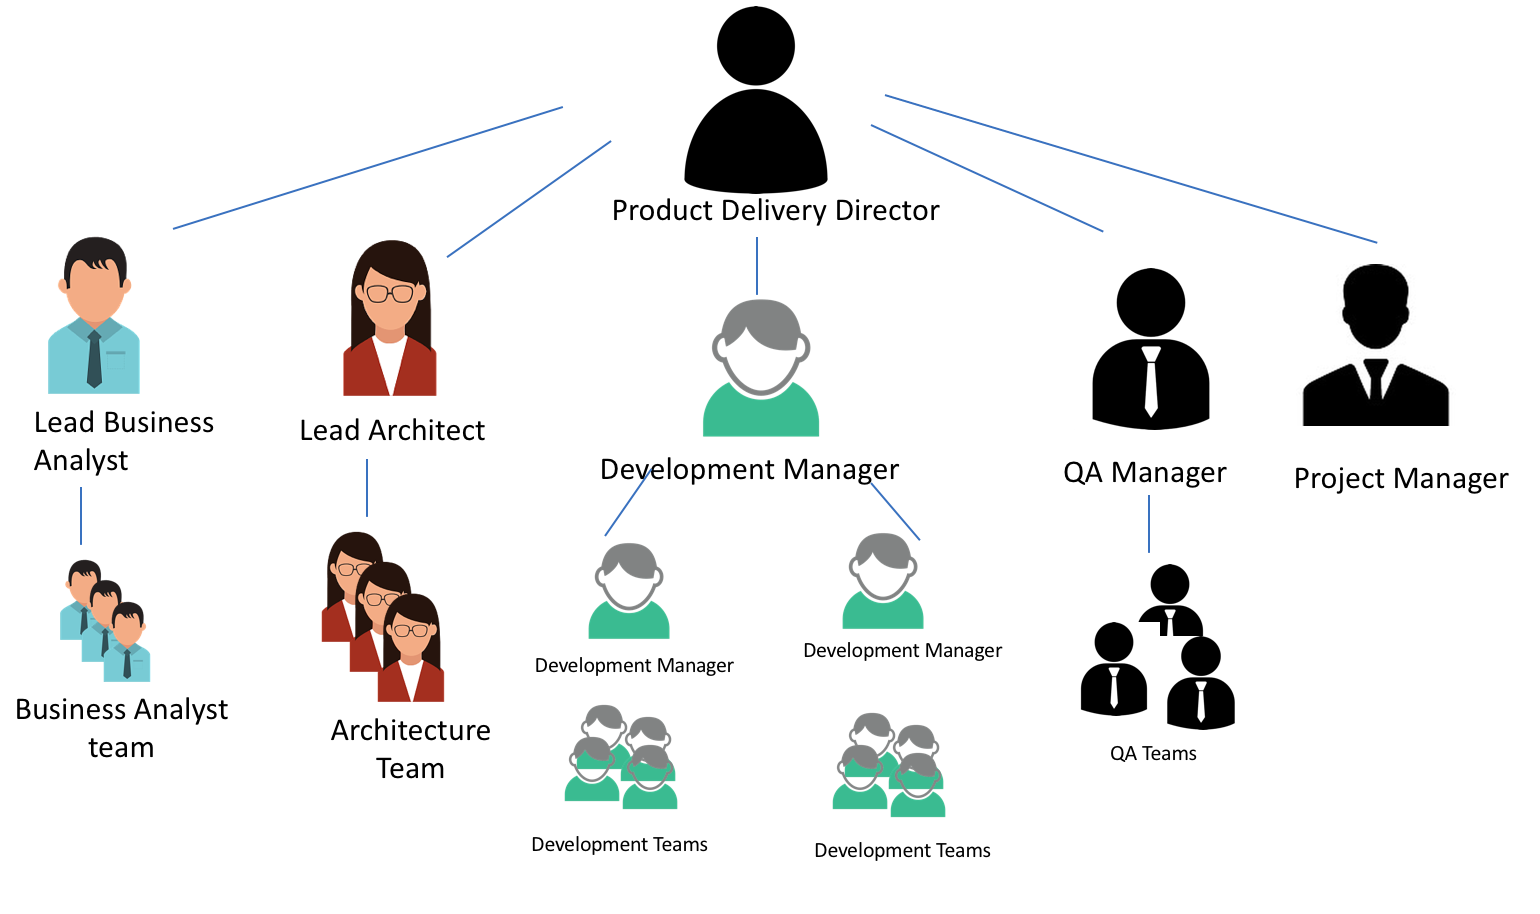 Original organizational structure